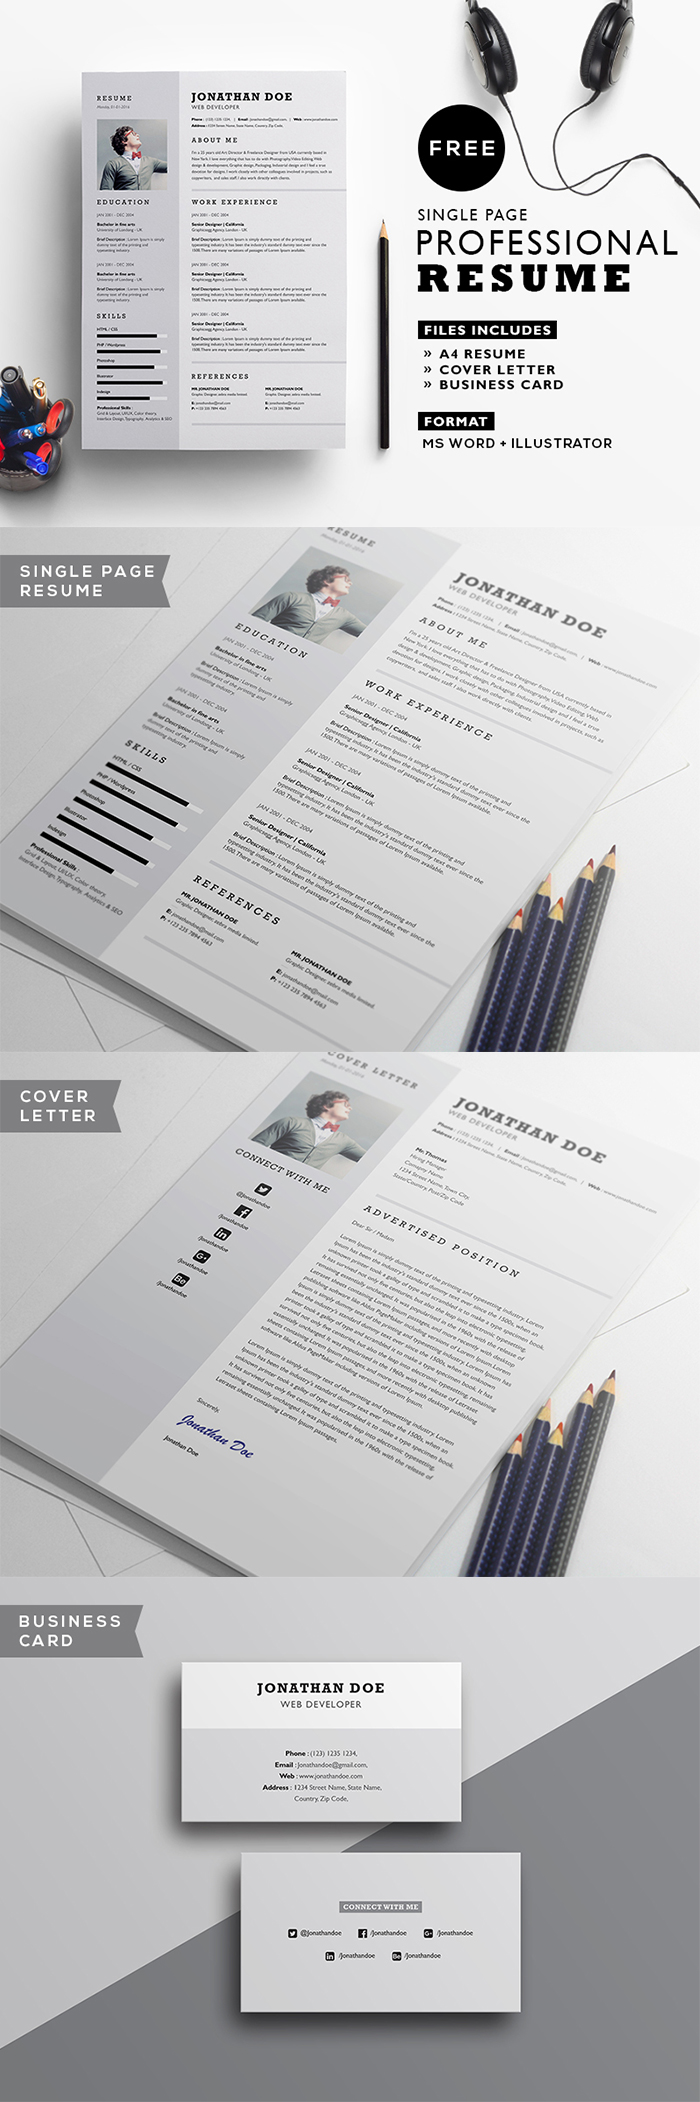 Free Professional Resume Template  Graphicsegg